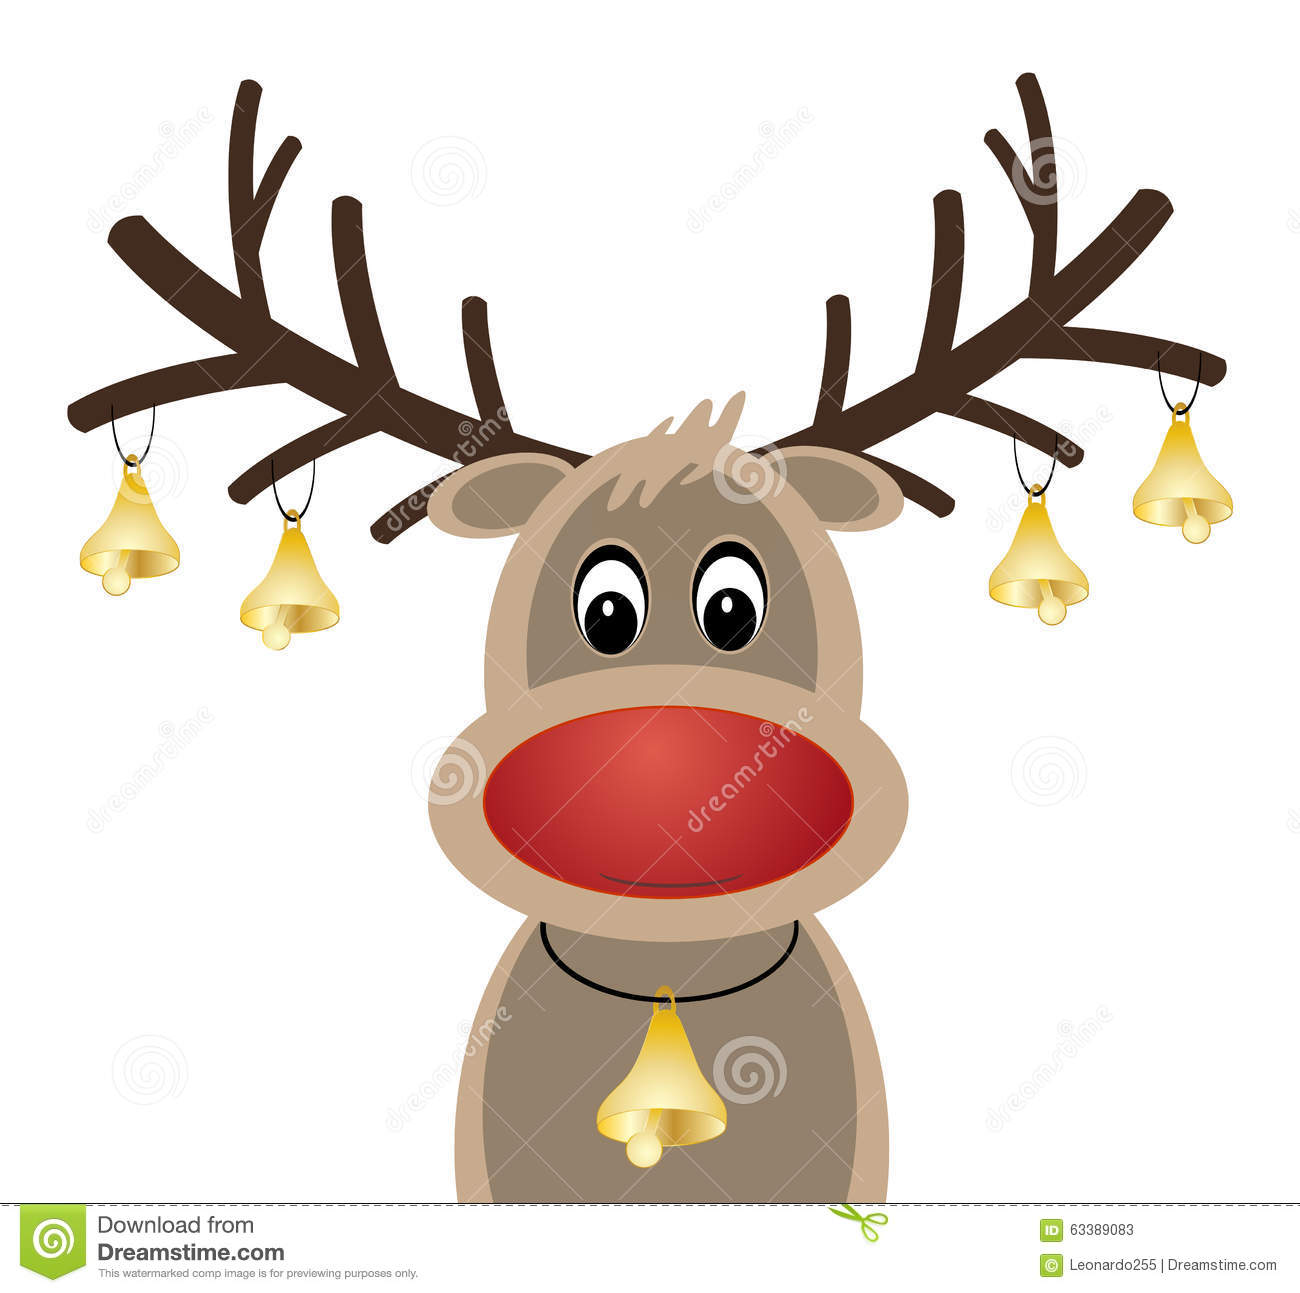 Rudolph Reindeer Red Nose With Christmas Bells Stock. Indoor Christmas Decorations Canada. Christmas Decorations On Cars. Battery Operated Christmas Tree Decorations. Classroom Christmas Decorations On Pinterest. Wooden Christmas Tree Decorations Uk. Pink Christmas Decorations Ireland. Animated Outdoor Christmas Decorations Uk. Christmas Ornaments And Crafts